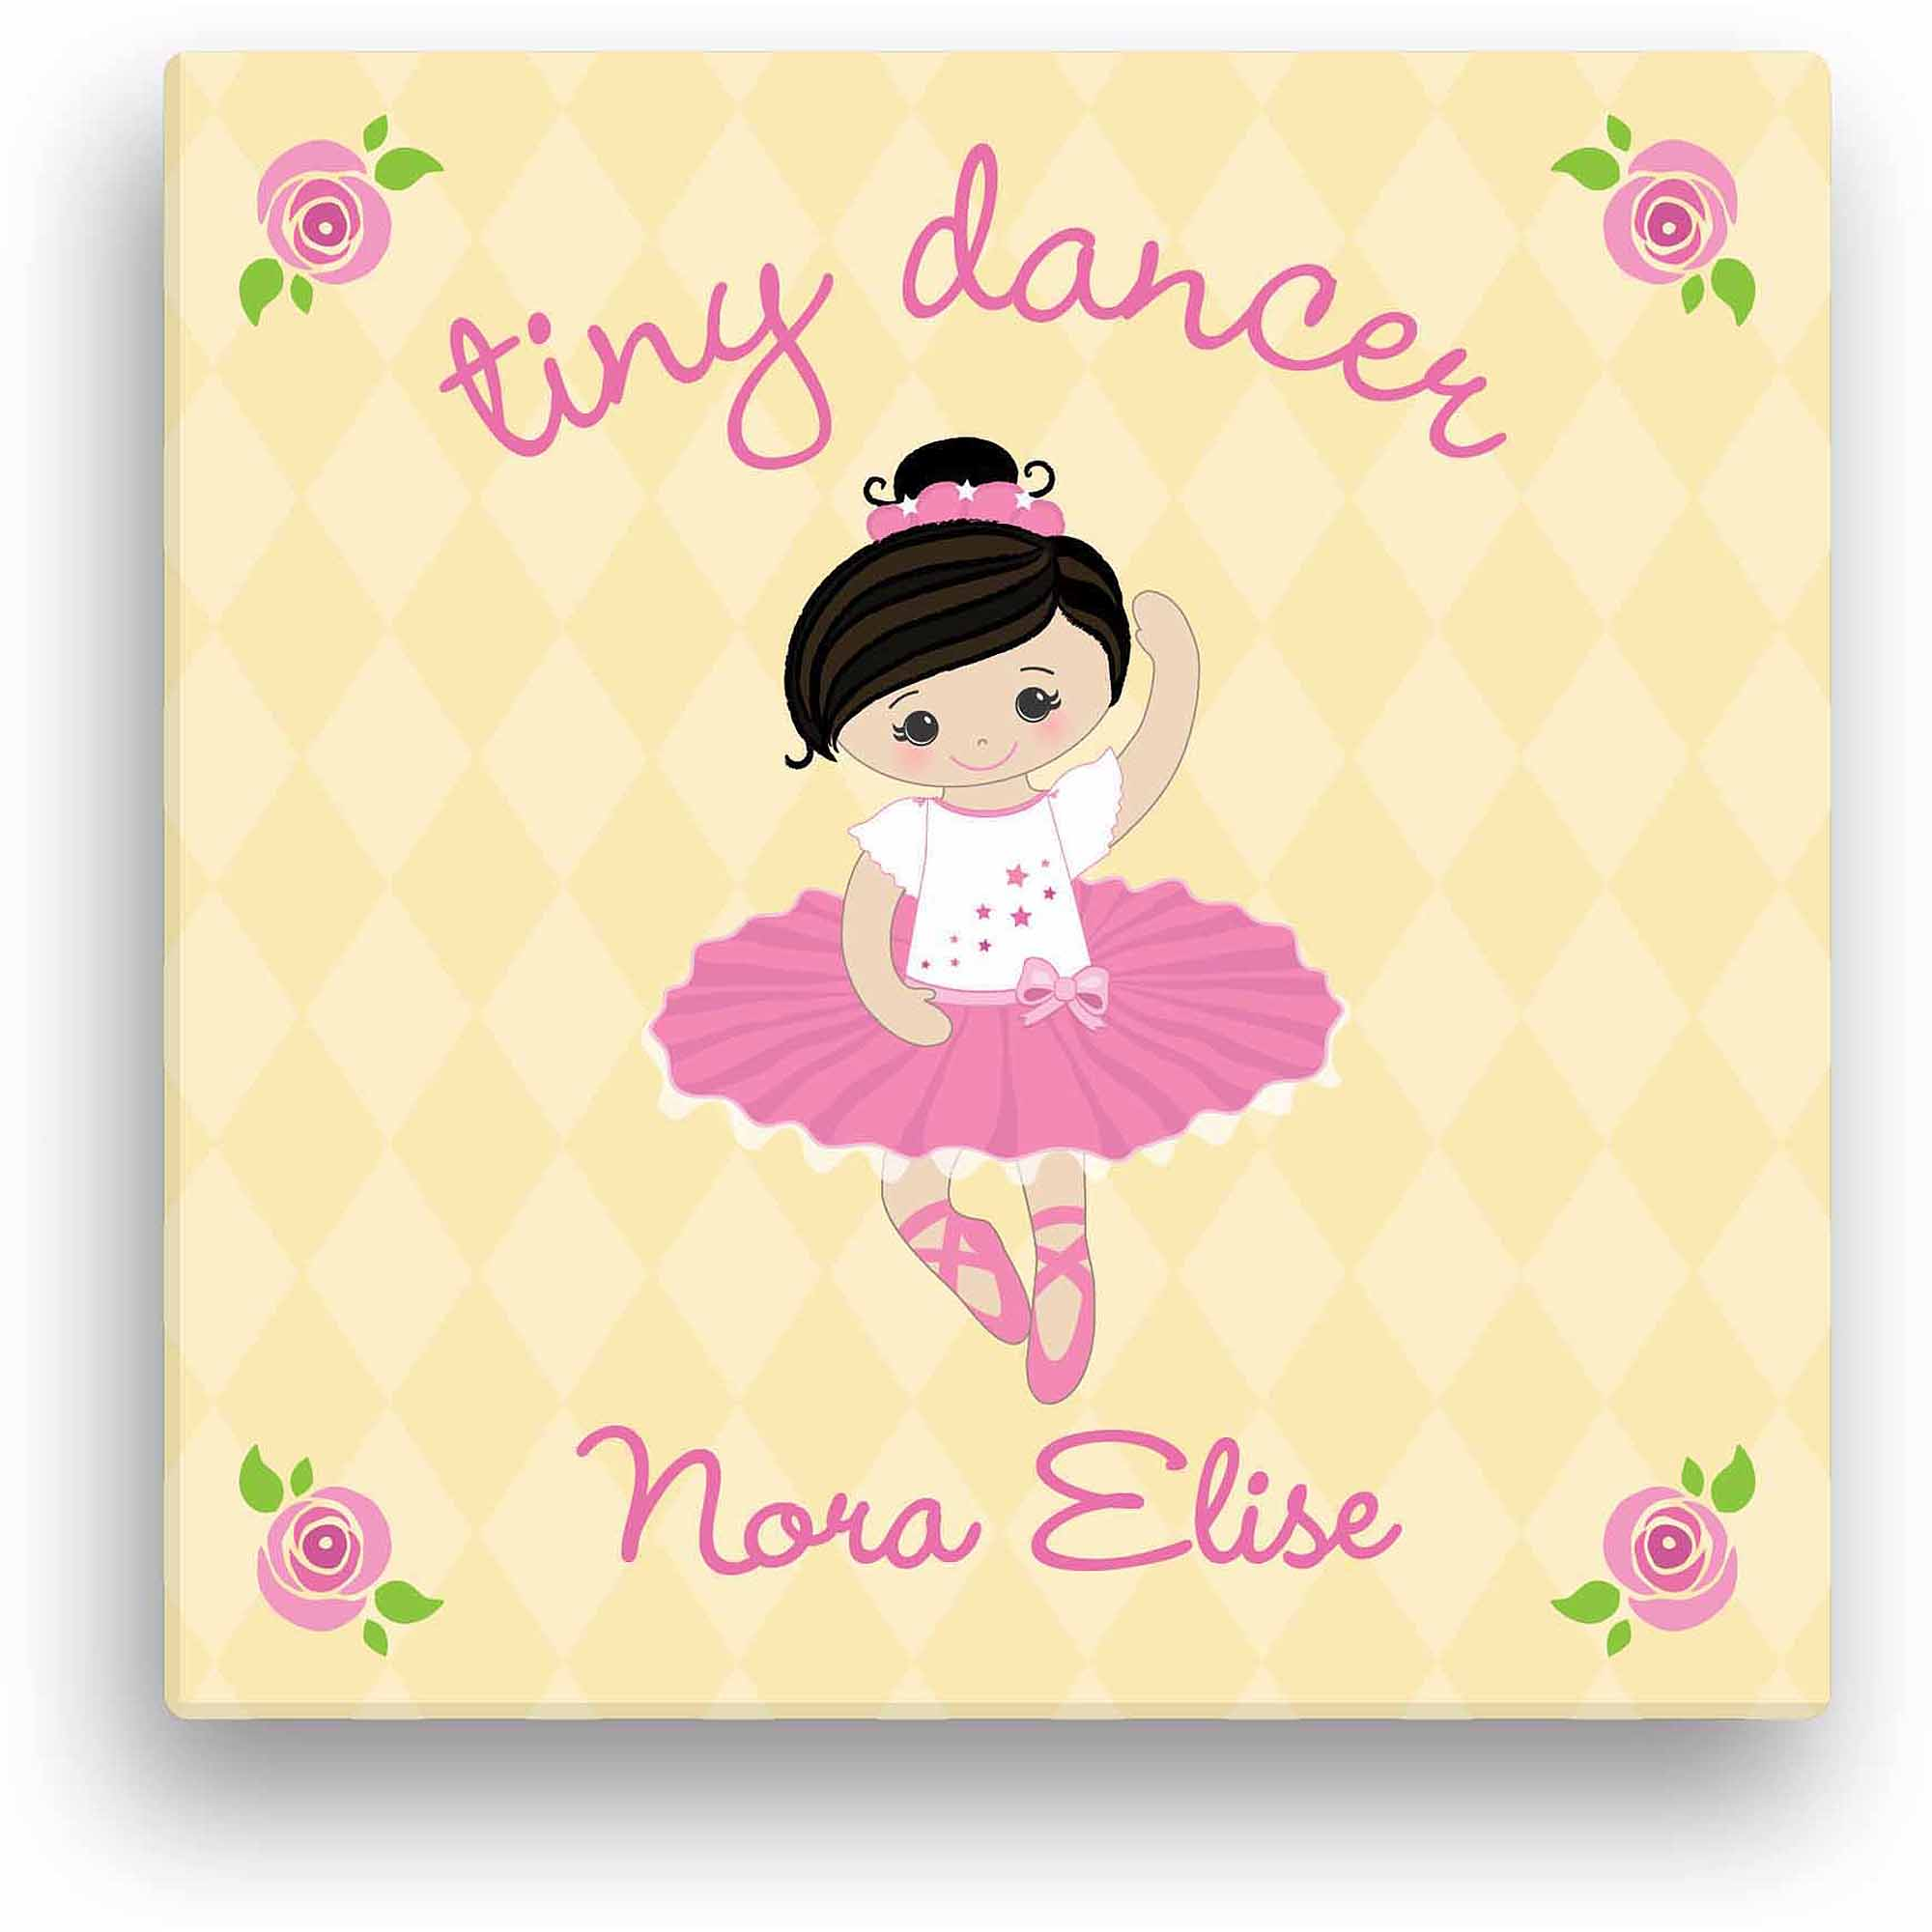 "Tiny Dancer 12"" x 12"" Personalized Canvas, Black Hair"